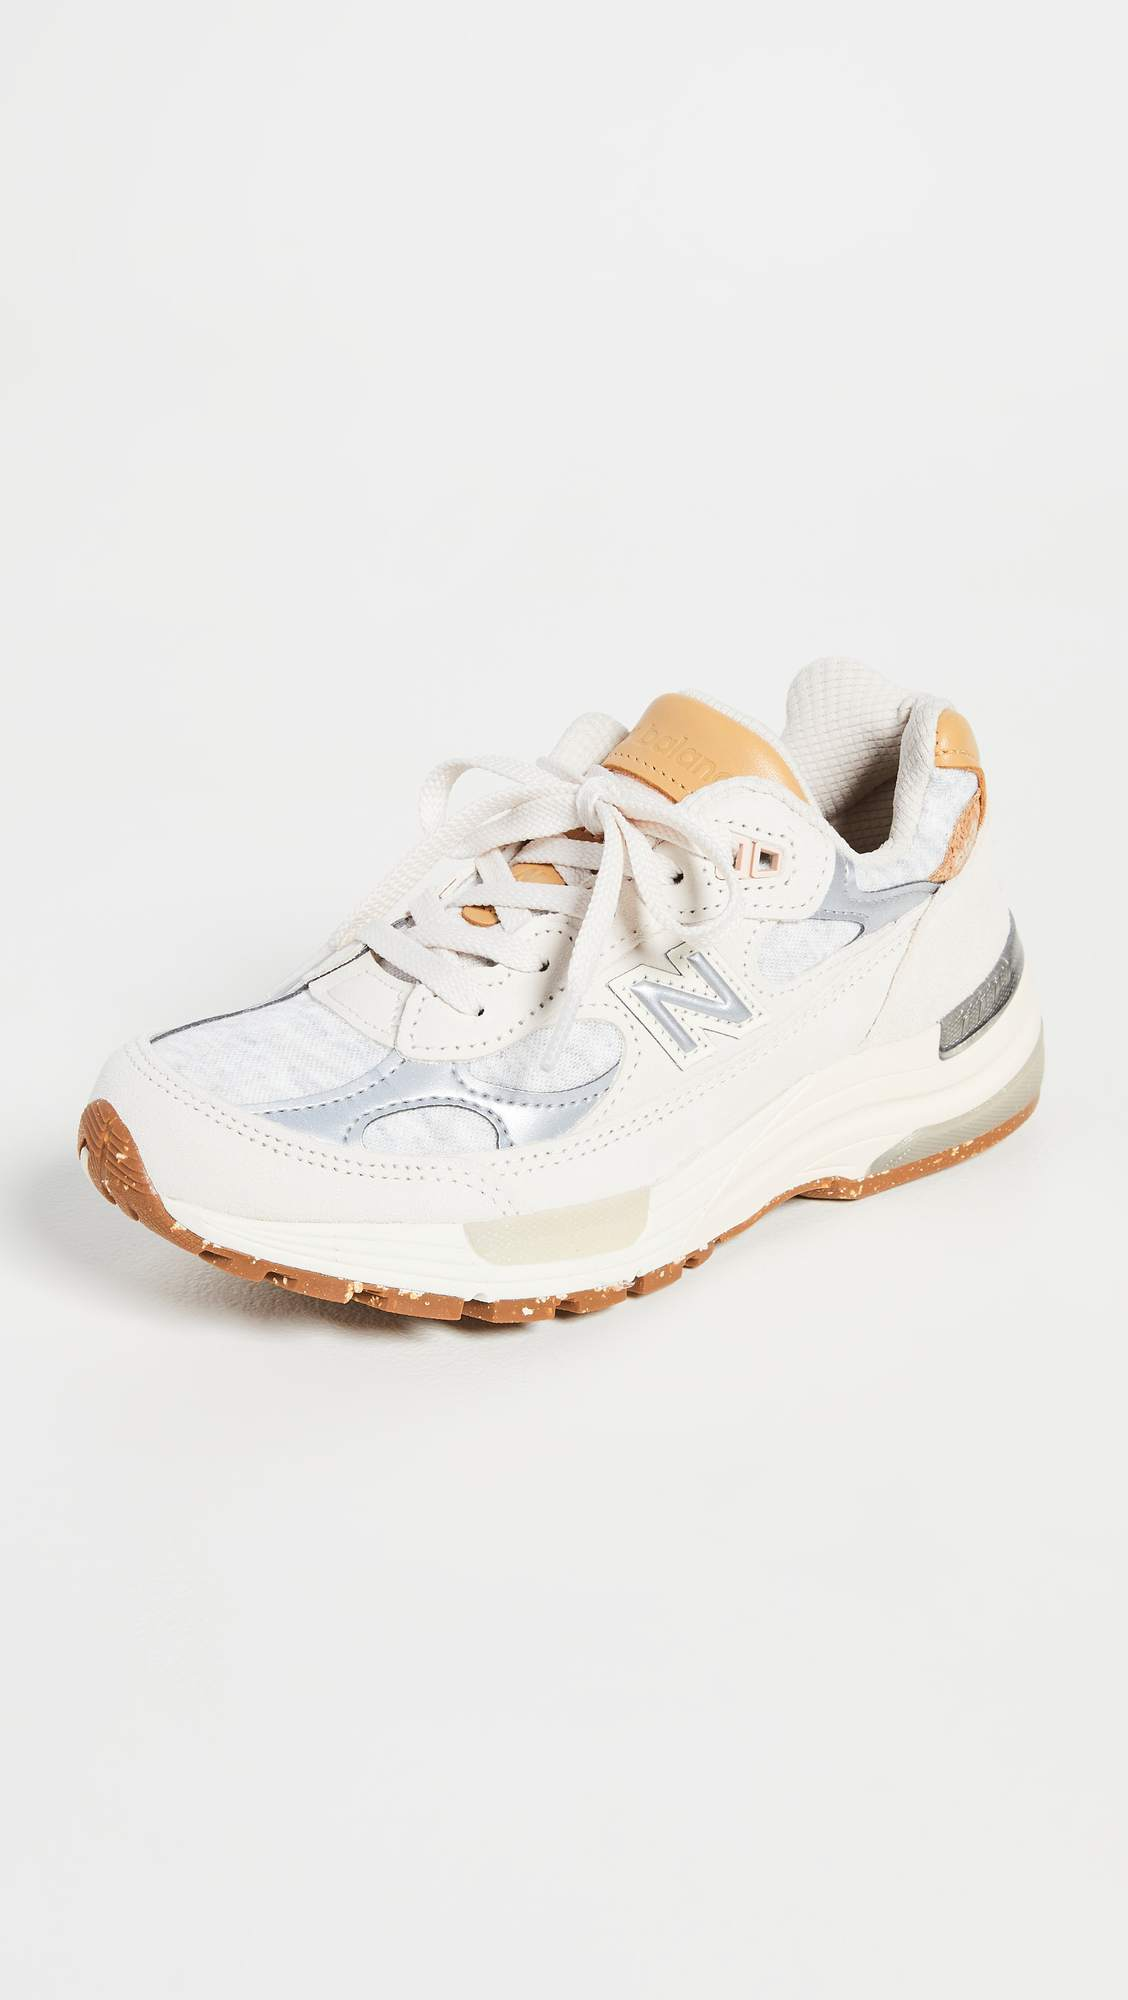 992 Sneakers by New Balance, available on shopbop.com for $200 Hailey Baldwin Shoes Exact Product